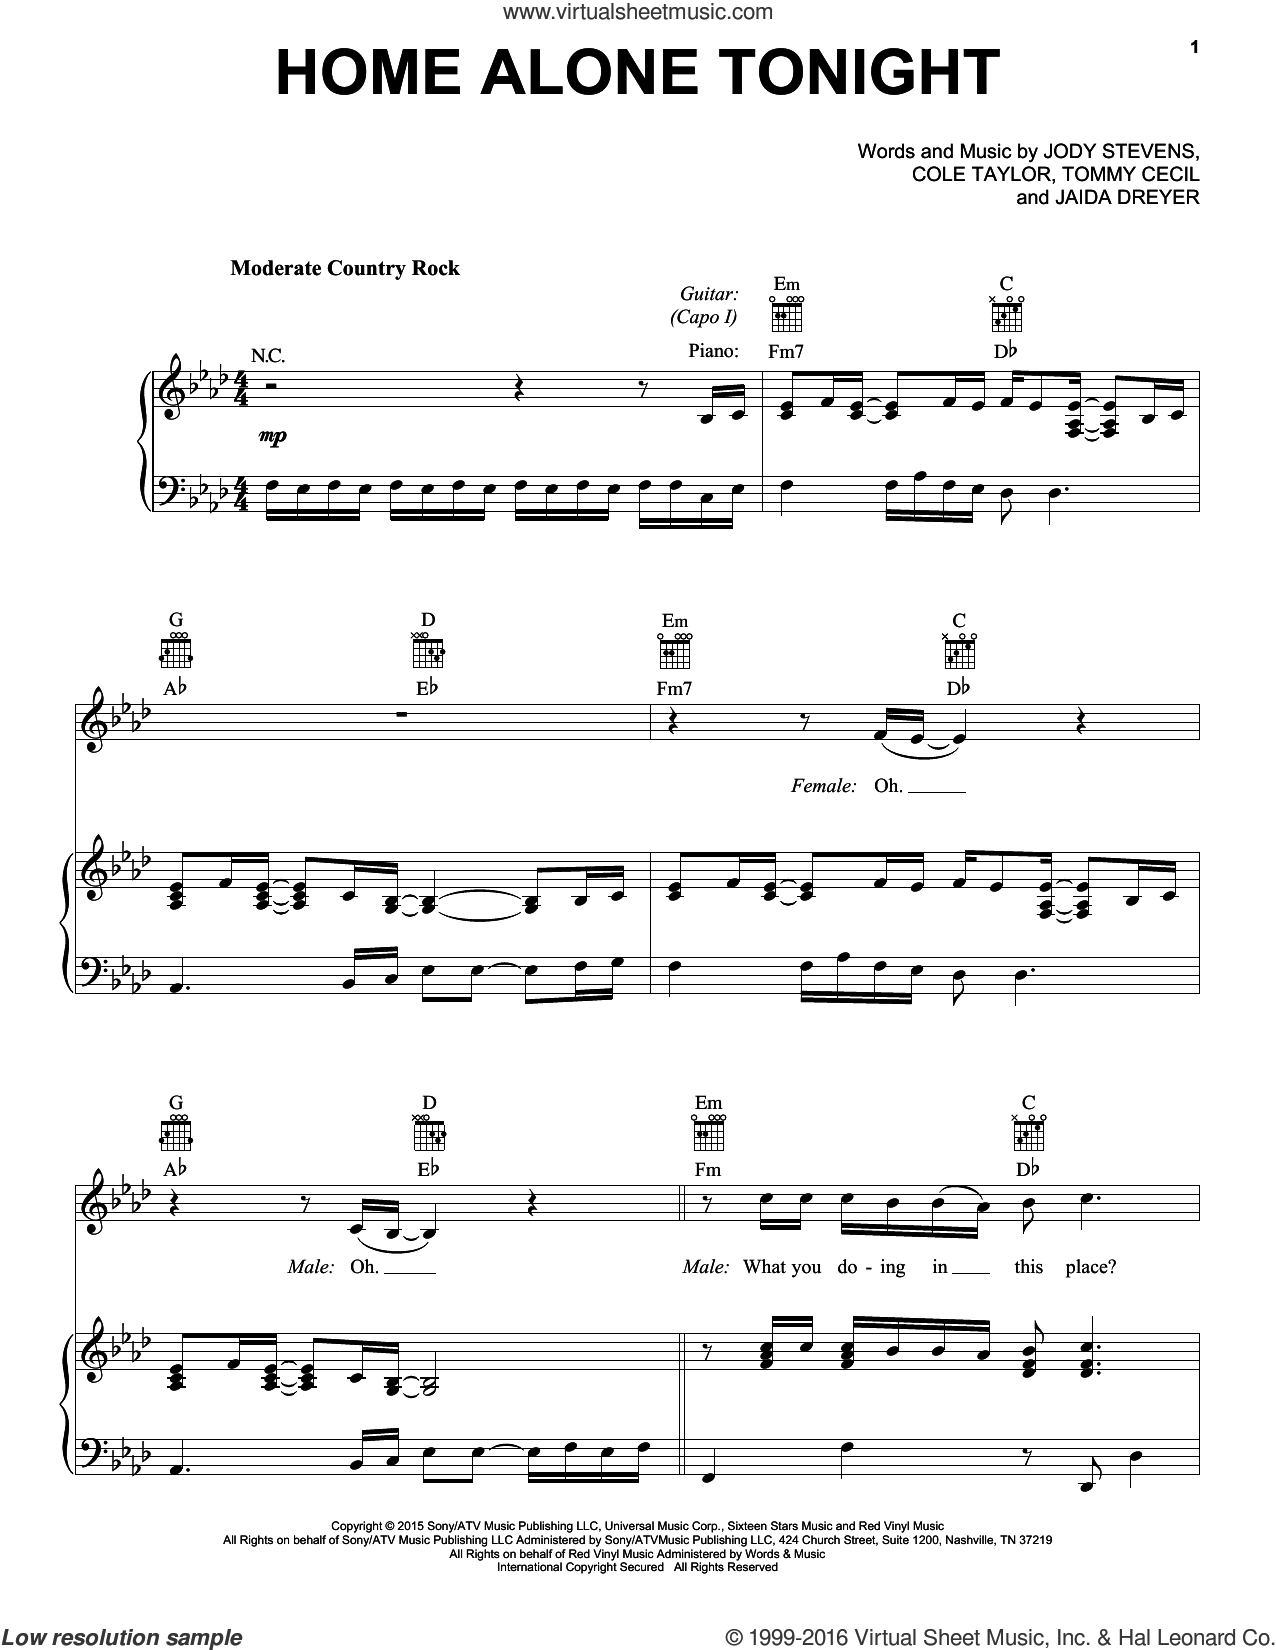 Home Alone Tonight sheet music for voice, piano or guitar by Tommy Cecil and Luke Bryan. Score Image Preview.